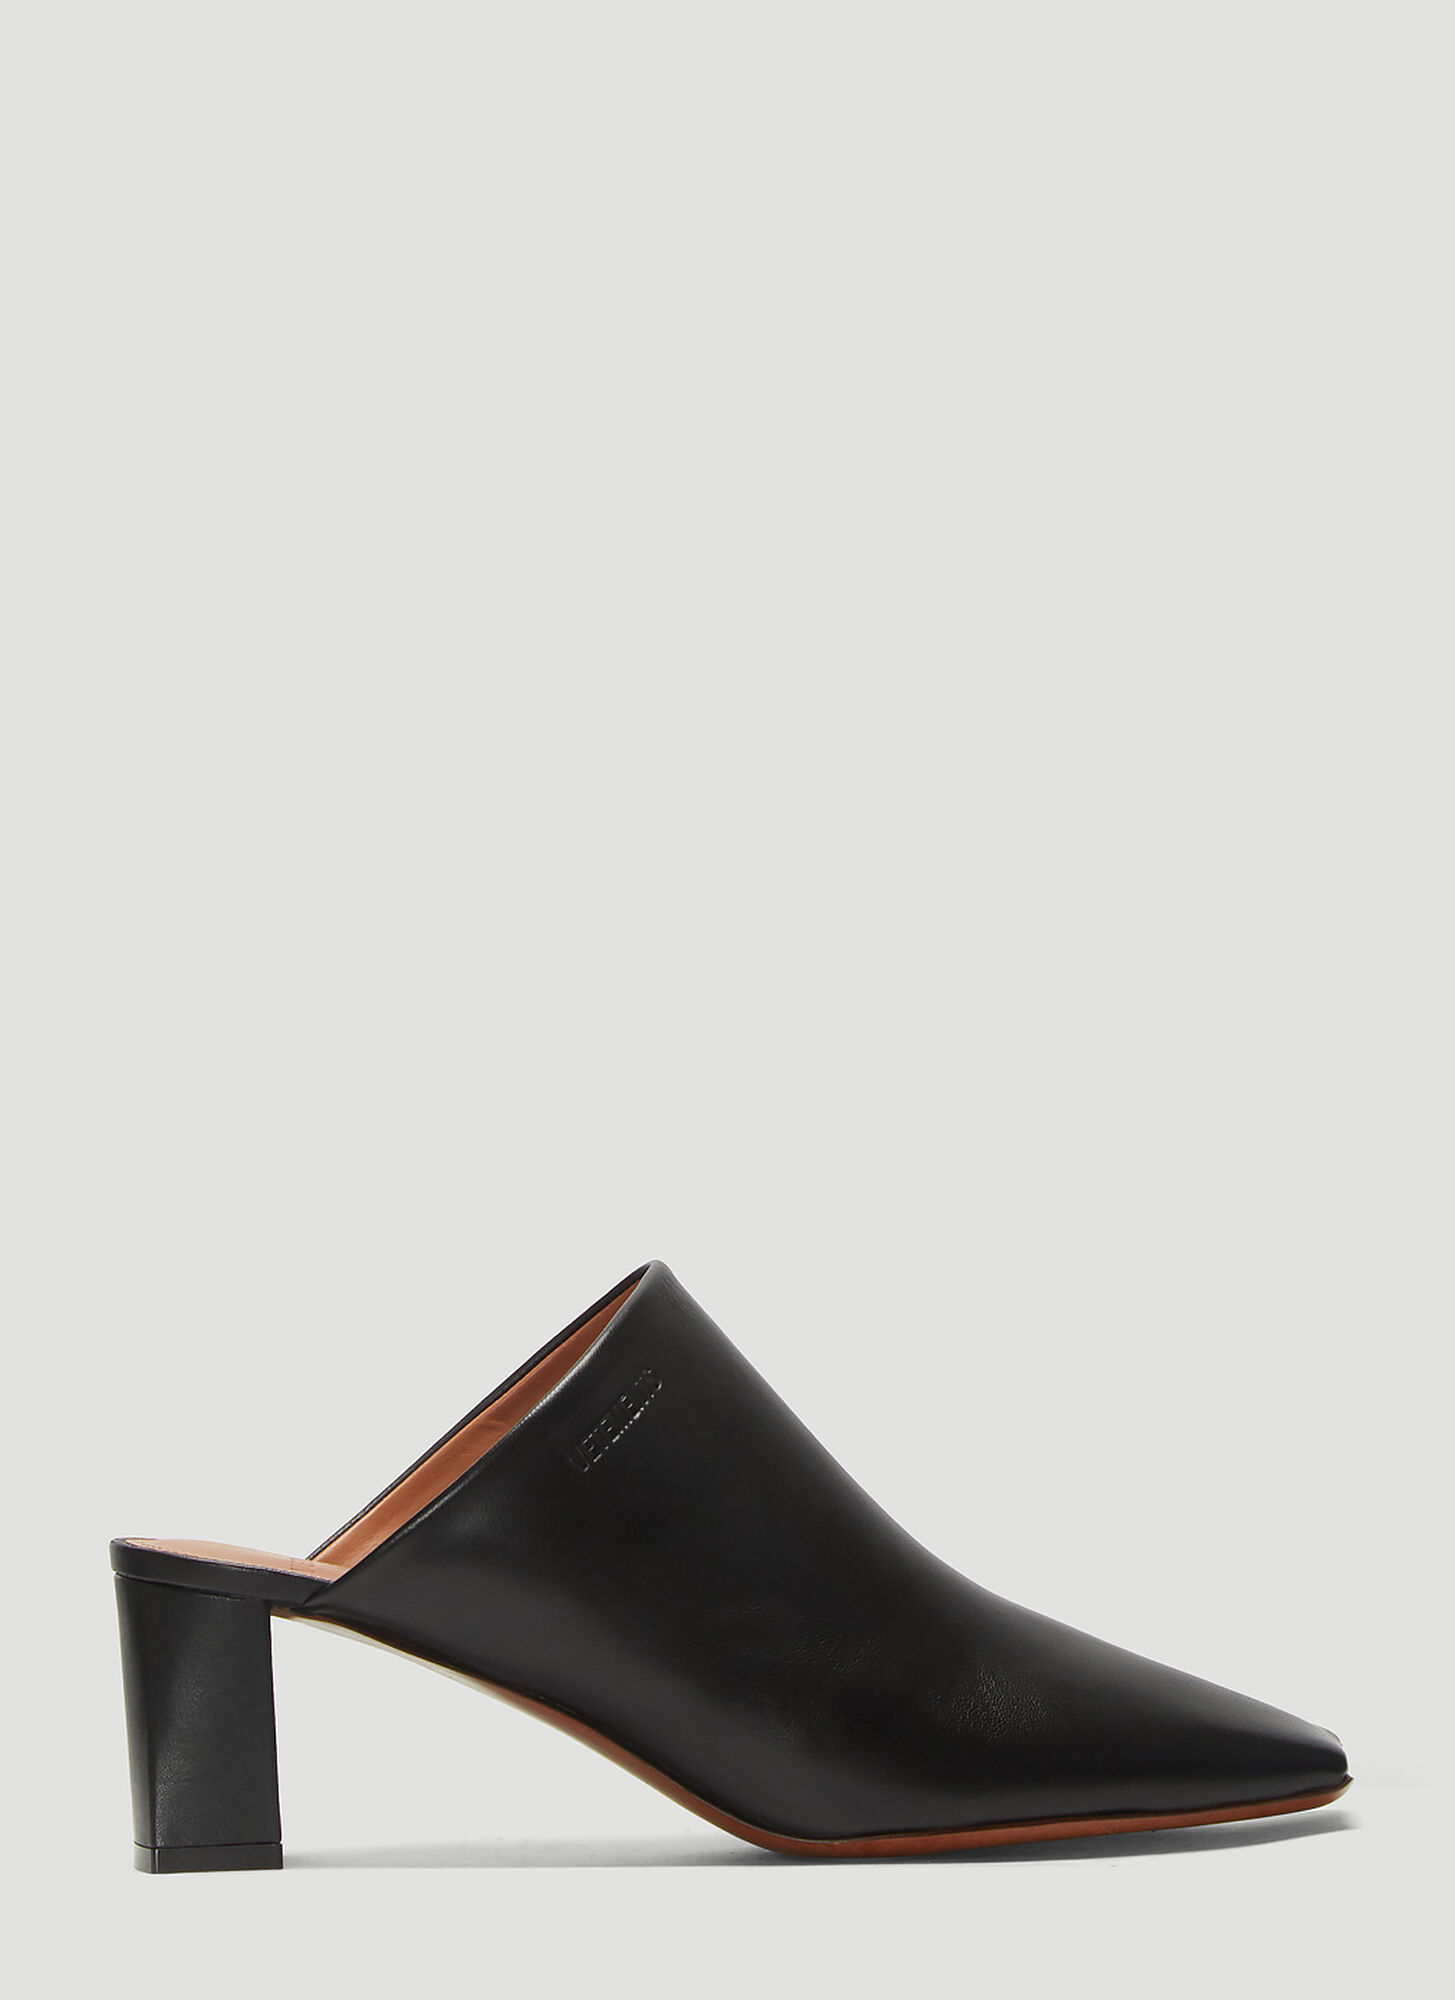 Vetements Boomerang Leather Mules in Black